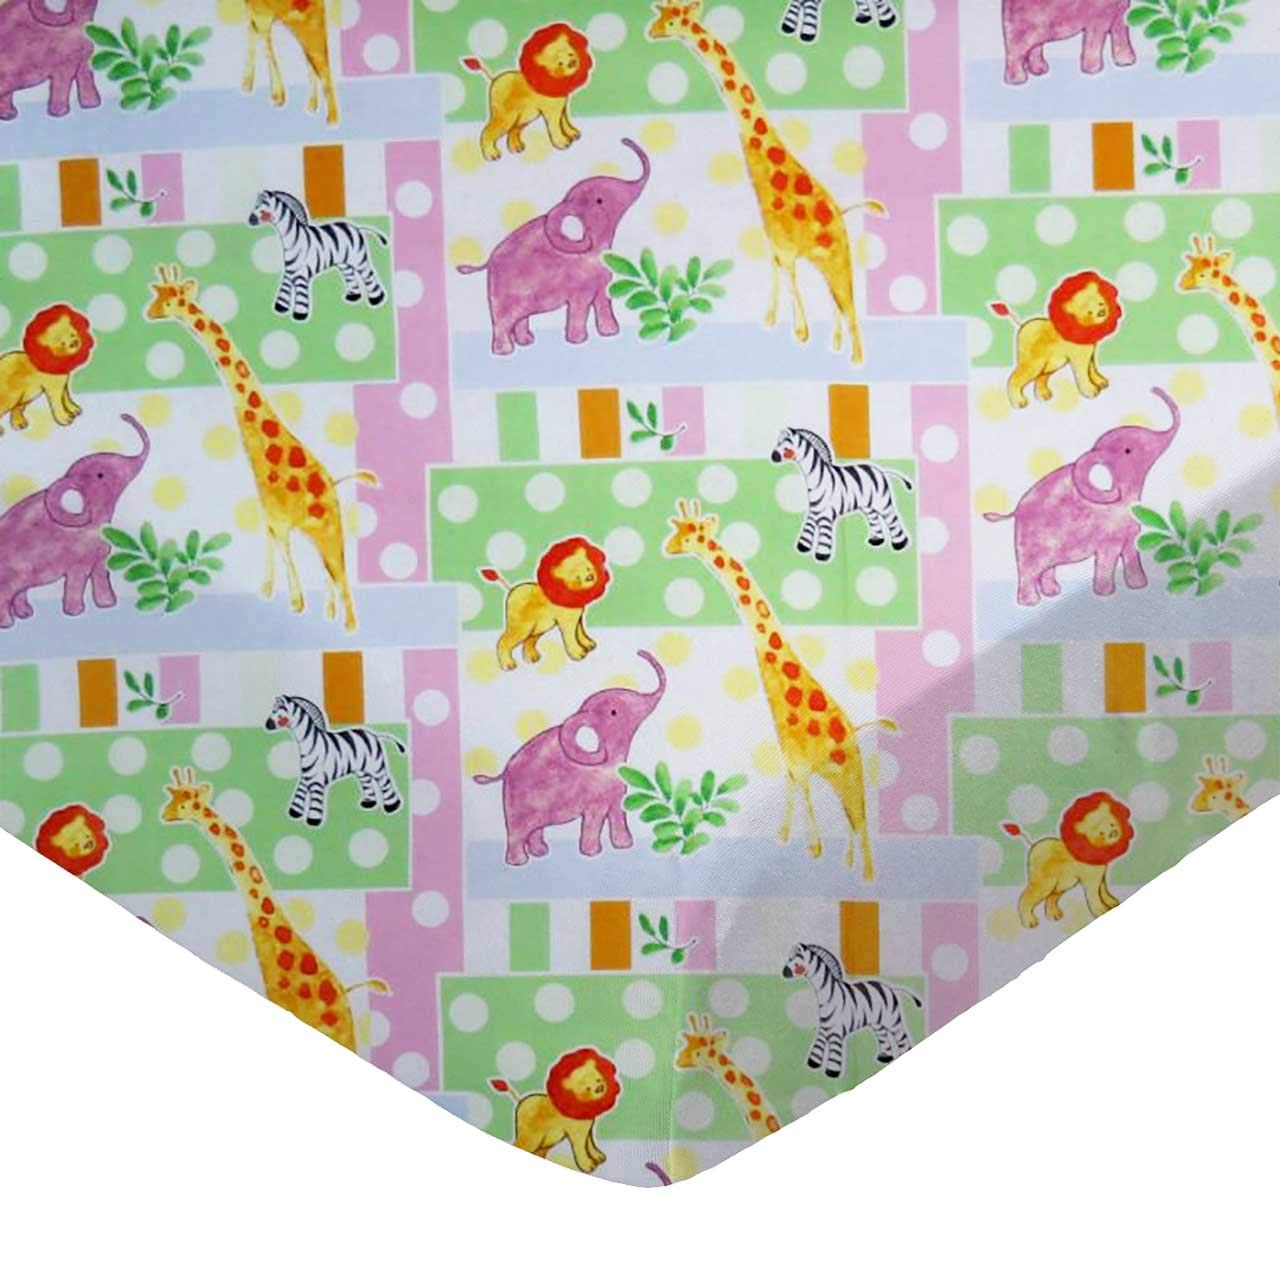 SheetWorld Fitted 100% Cotton Percale Bassinet Sheet 15 x 33, Elephants & Giraffes, Made in USA SHEETWORLD.COM CB-W1112